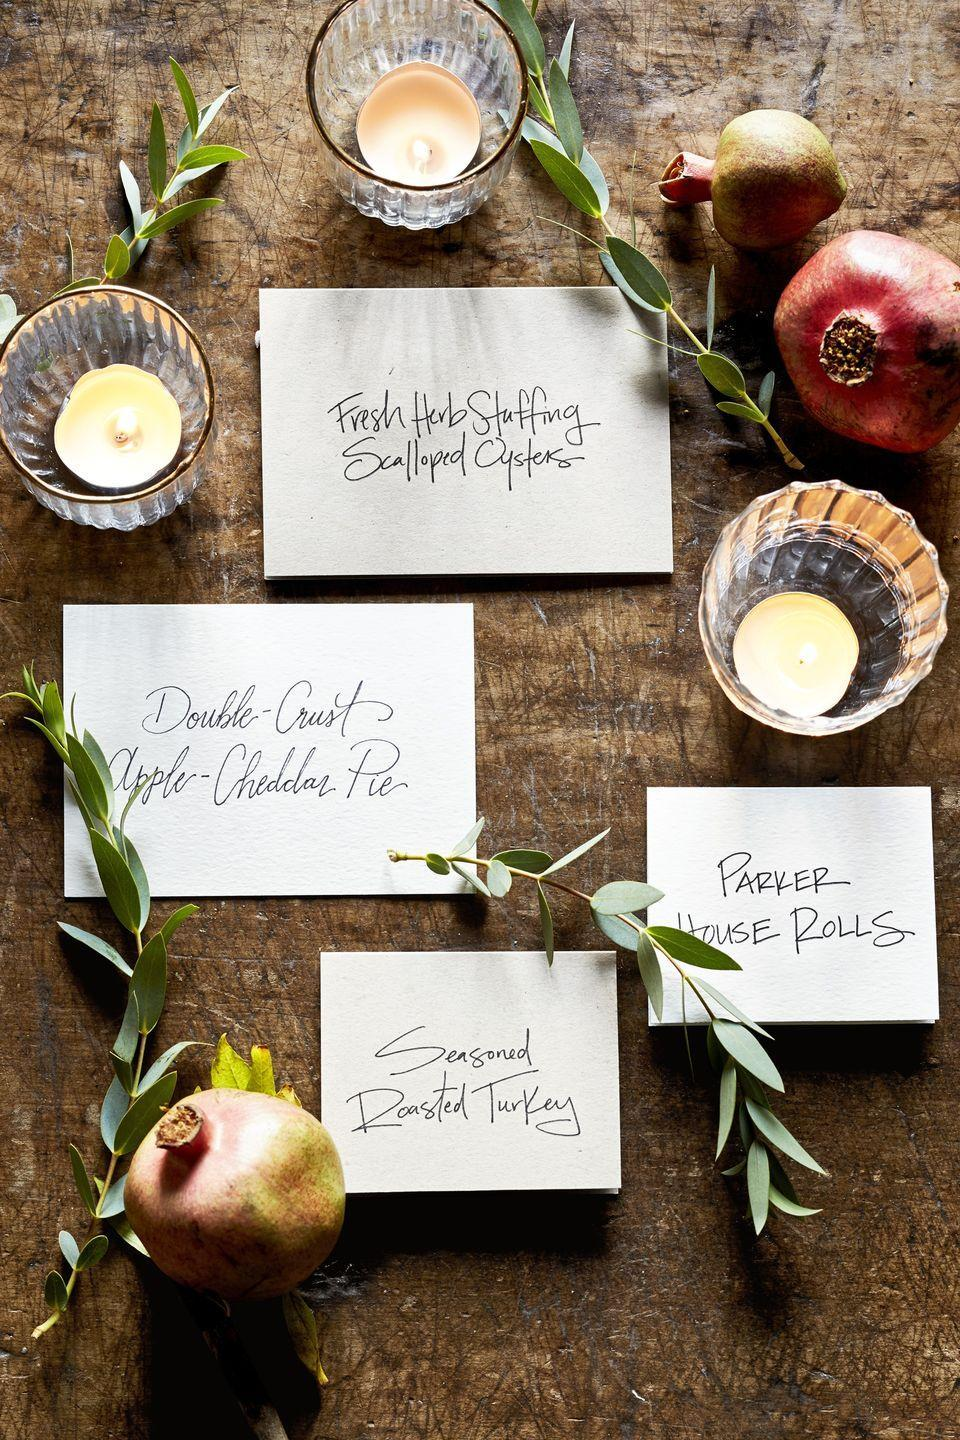 """<p>Show off your calligraphy skills alongside your cooking skills. Menu cards are not only functional, but can be a beautiful addition to your Thanksgiving dinner, too. </p><p><a class=""""link rapid-noclick-resp"""" href=""""https://www.amazon.com/White-Thick-Paper-Cardstock-Invitations/dp/B00RU6IGAS/?tag=syn-yahoo-20&ascsubtag=%5Bartid%7C10050.g.1371%5Bsrc%7Cyahoo-us"""" rel=""""nofollow noopener"""" target=""""_blank"""" data-ylk=""""slk:SHOP WHITE CARD STOCK"""">SHOP WHITE CARD STOCK</a></p>"""